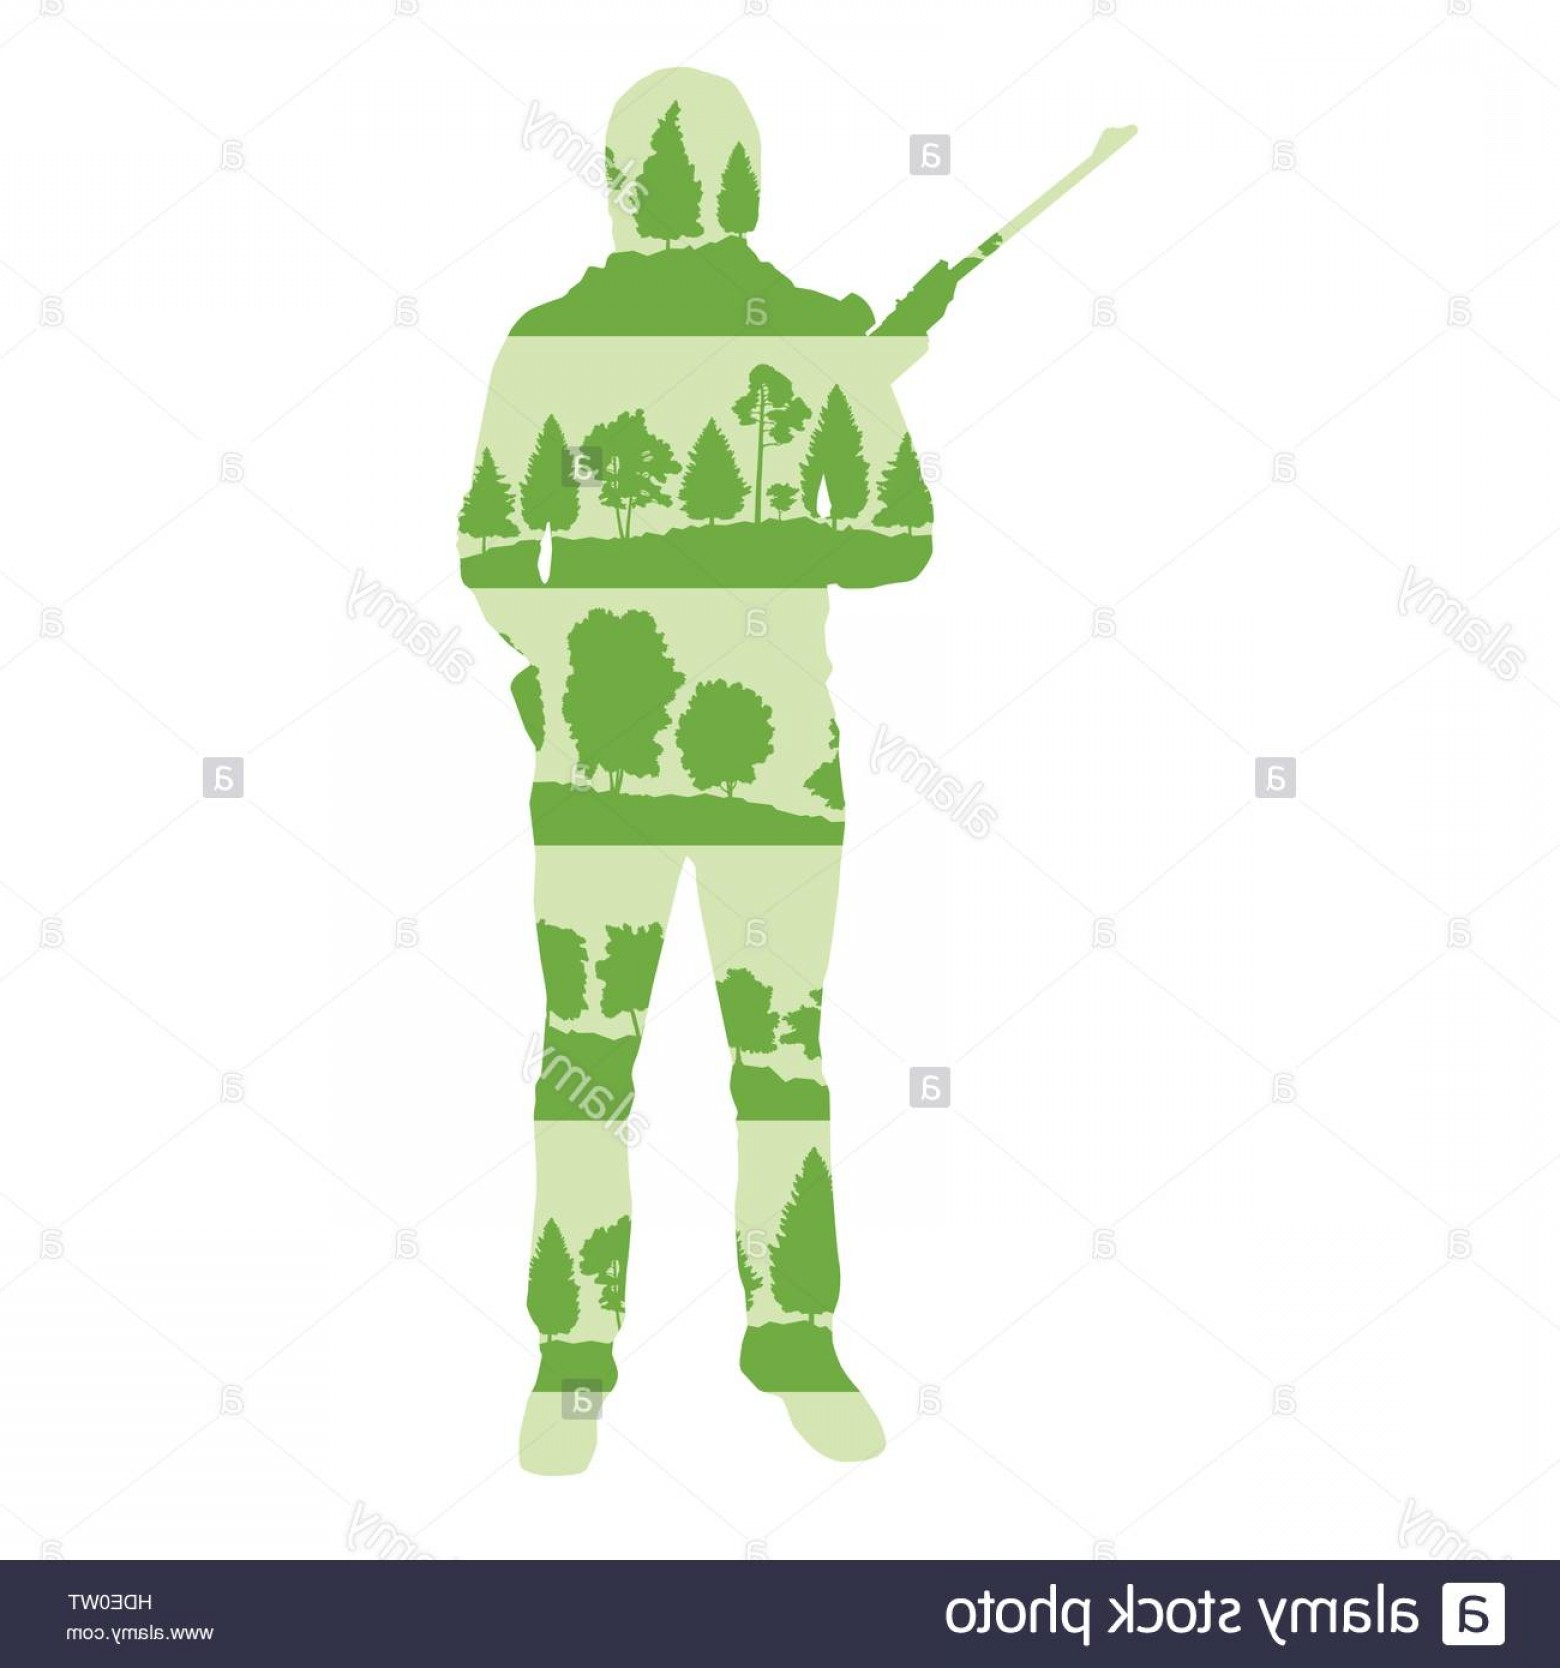 Boba Fett Silhouette Vector: Stock Photo Hunter Silhouette With Rifle Vector Background Concept Made Of Forest